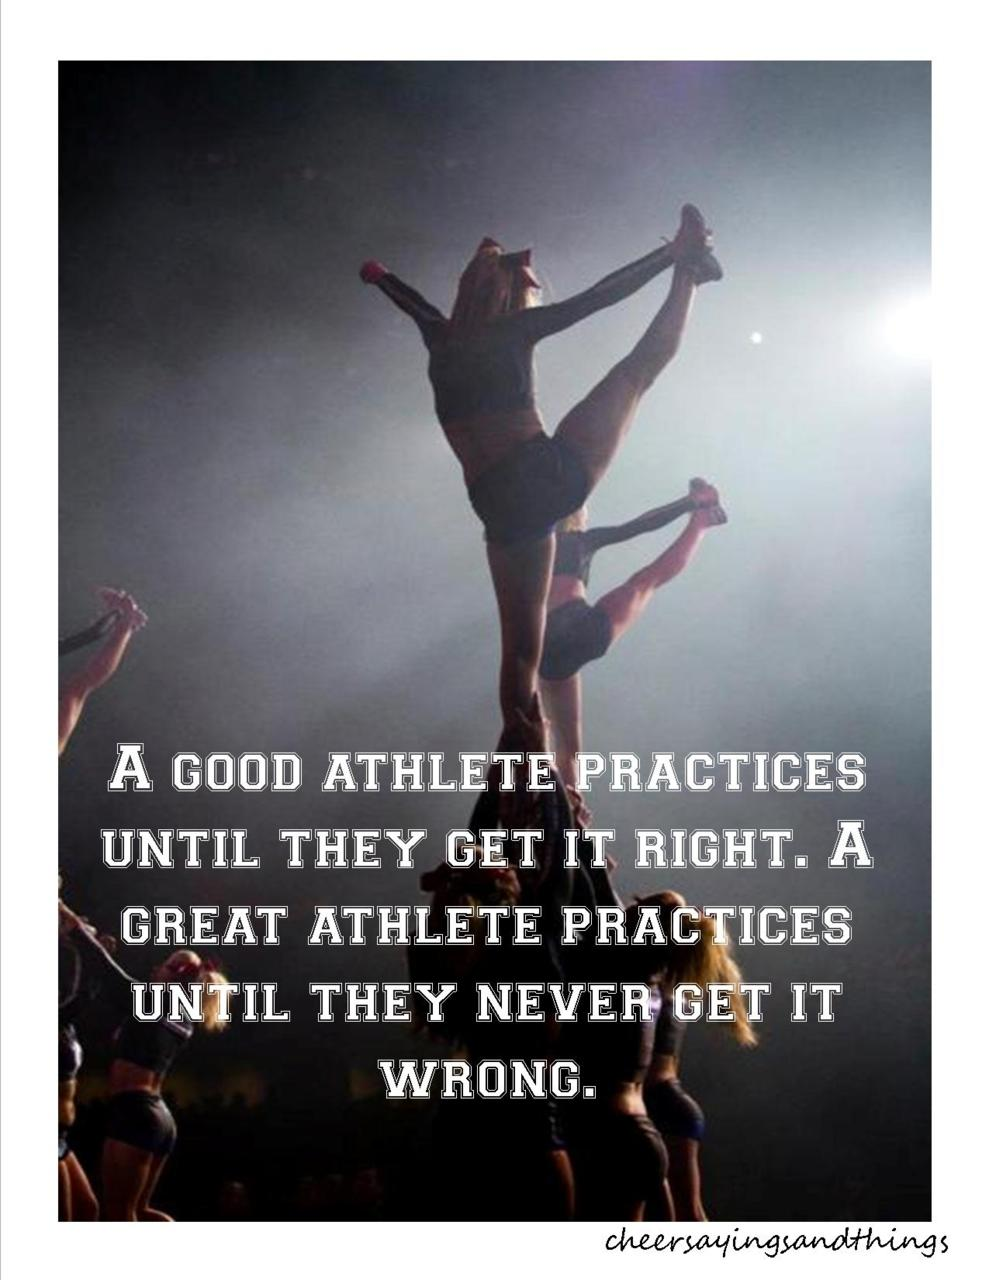 Quotes about Cheerleading practice (26 quotes)